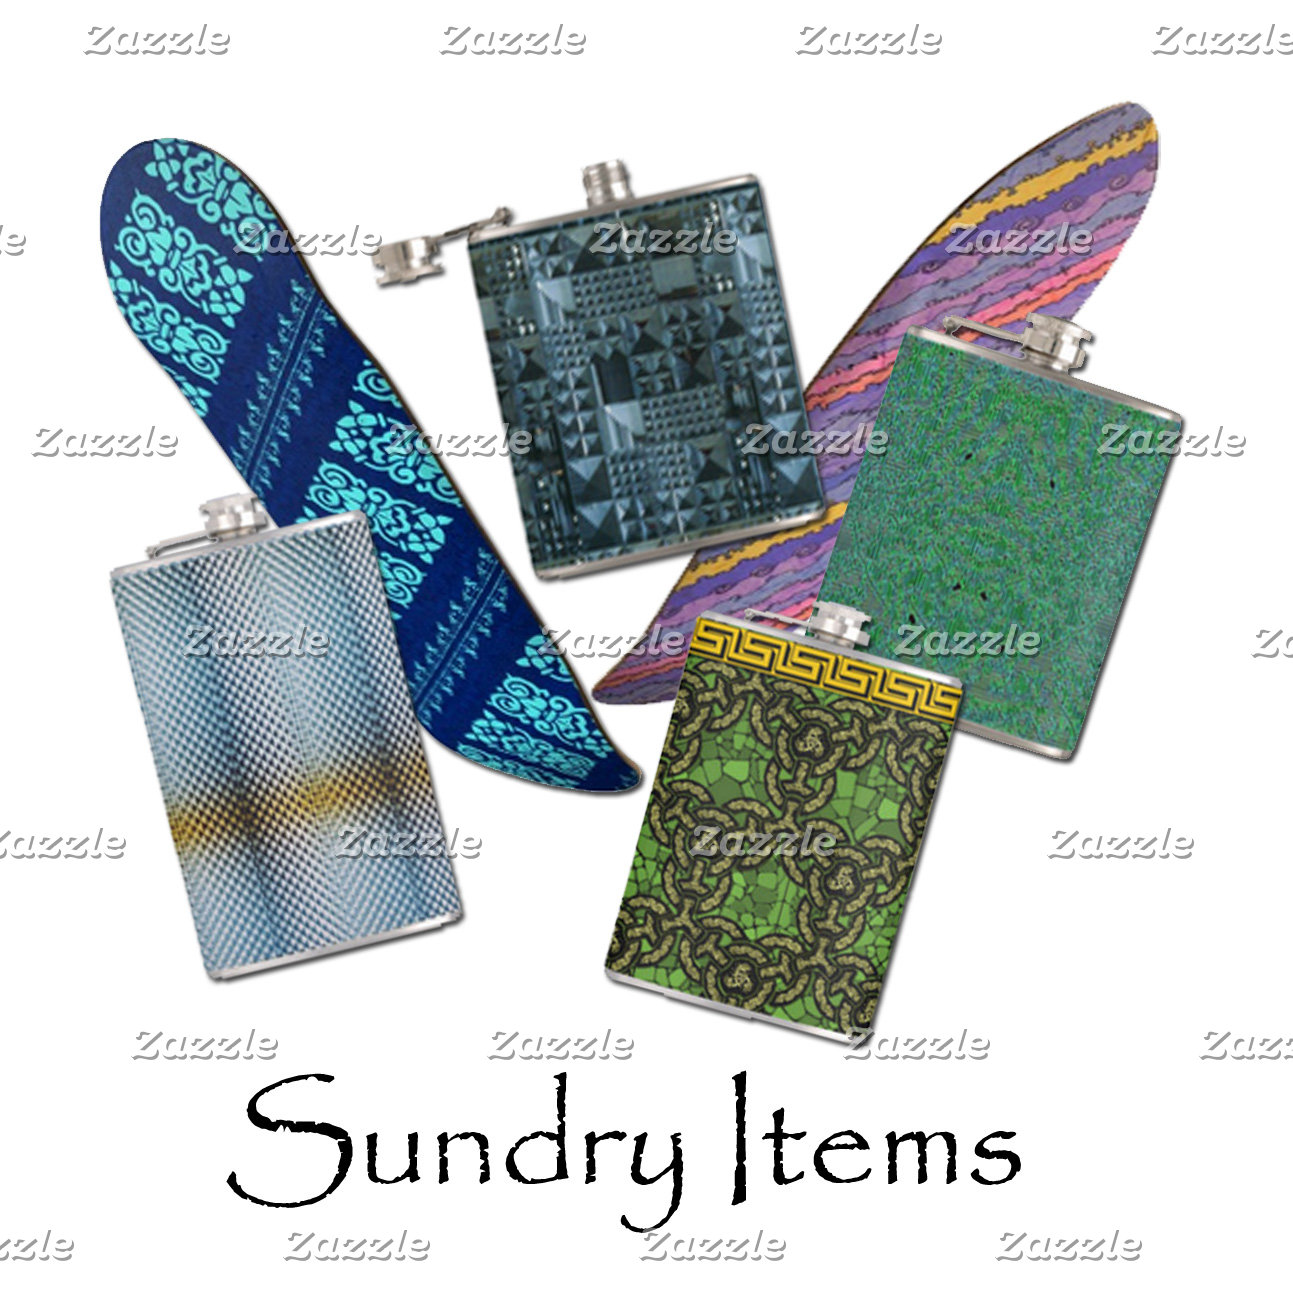 Sundries, Flasks, Bandanas, etc.